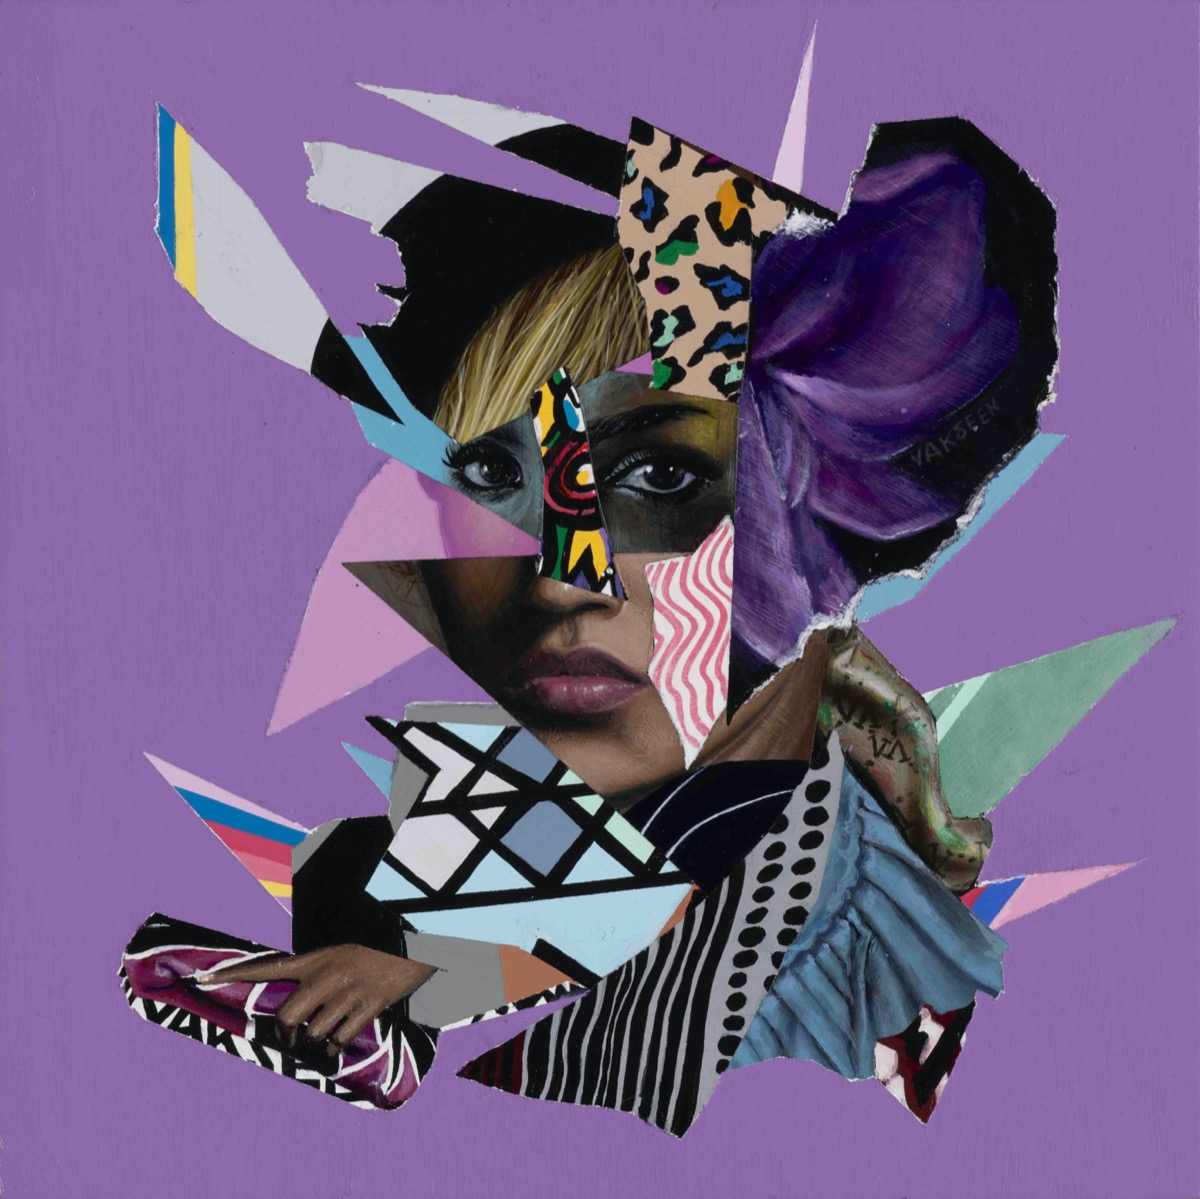 an abstract portrait of various angular triangles and rectangles, each filled with different types of patterns. these are spliced over a woman's face